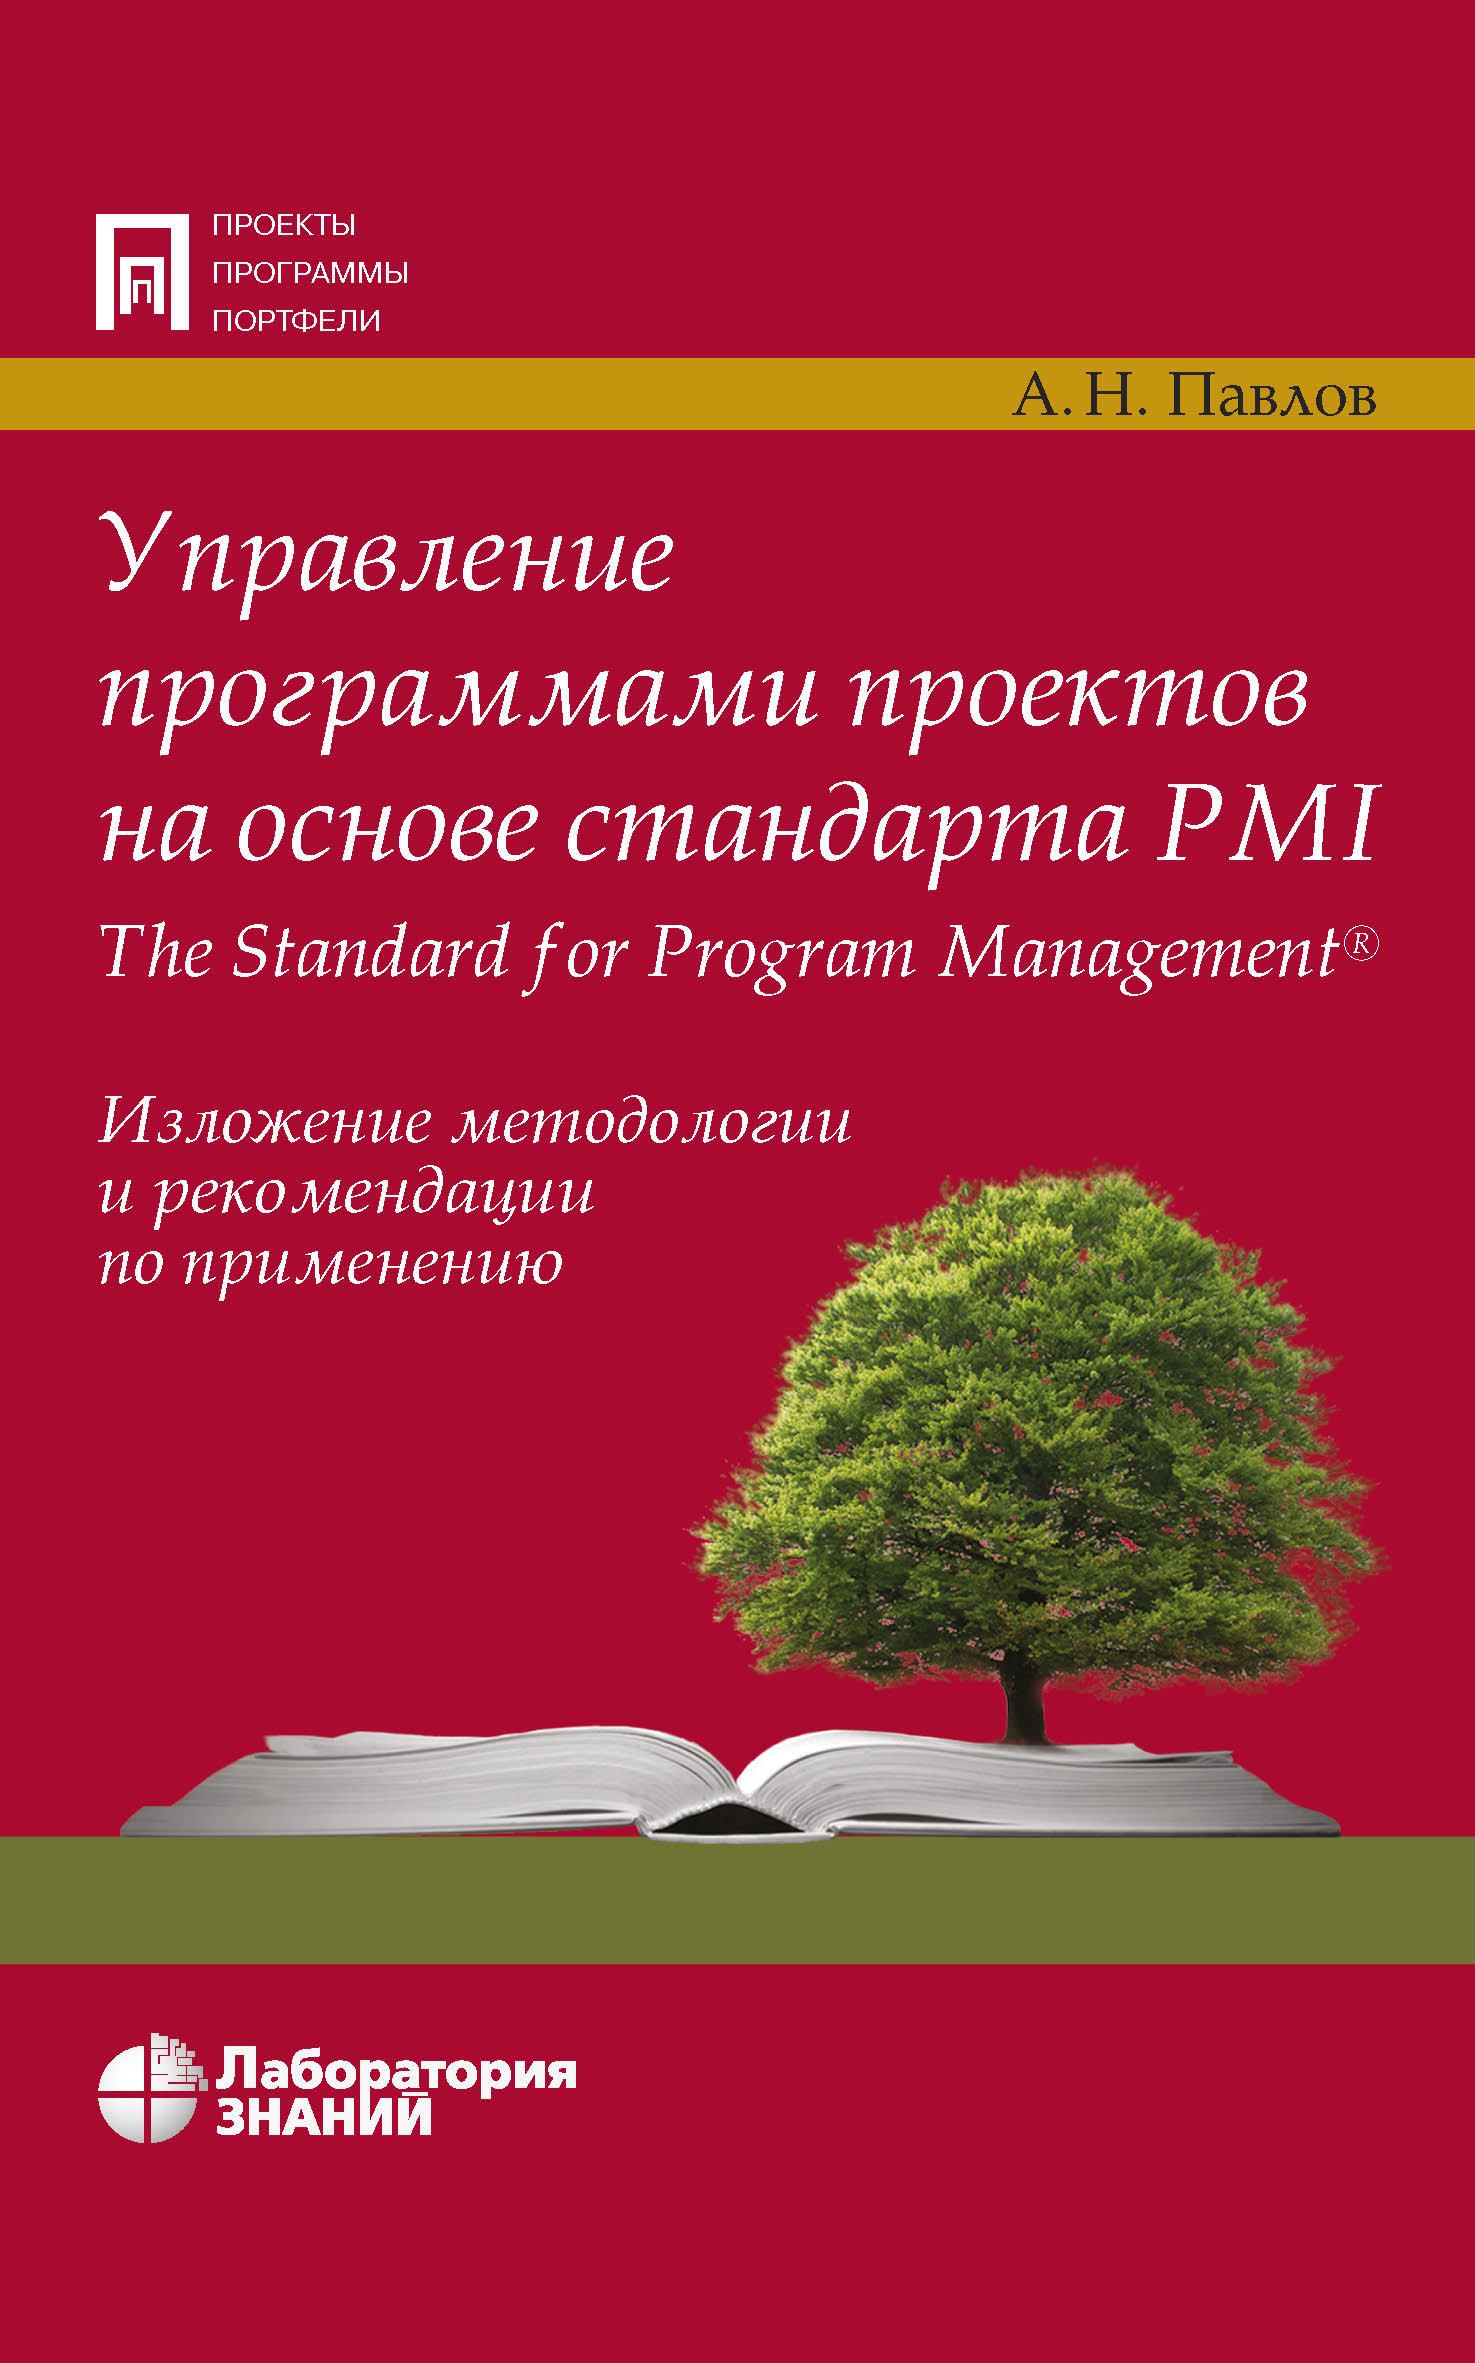 А. Н. Павлов Управление программами проектов на основе стандарта PMI The Standard for Program Management. Изложение методологии и рекомендации по применению 1 free shipping heidelberg printing machine parts 92 184 1011 heidelberg sm74 intermediate roller electromagnetic valve